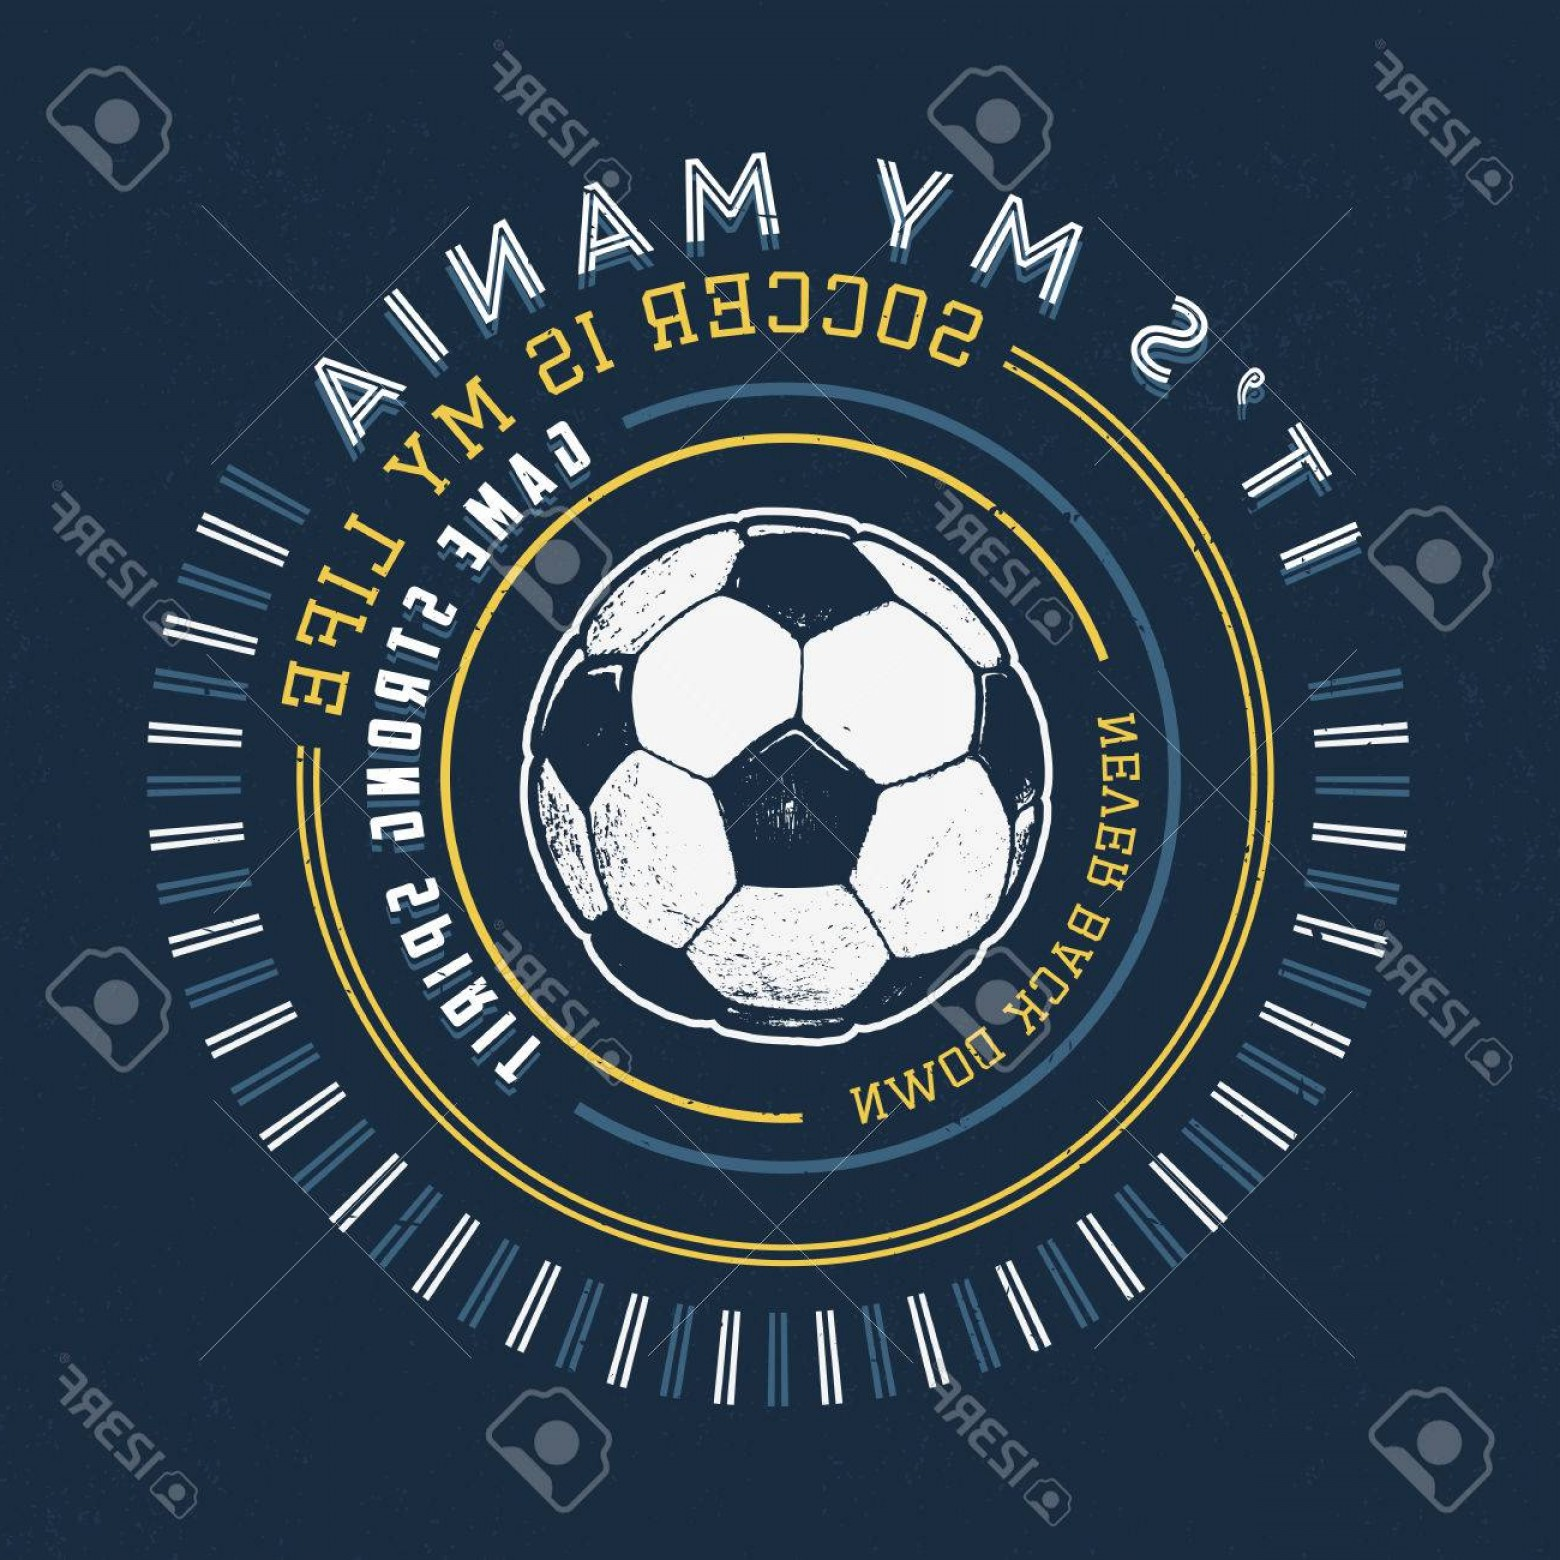 Gru Vector Logos: Photostock Vector Soccer Mania Handmade Football Ball Design Fashion Apparel Texture Print T Shirt Graphic Vintage Gru